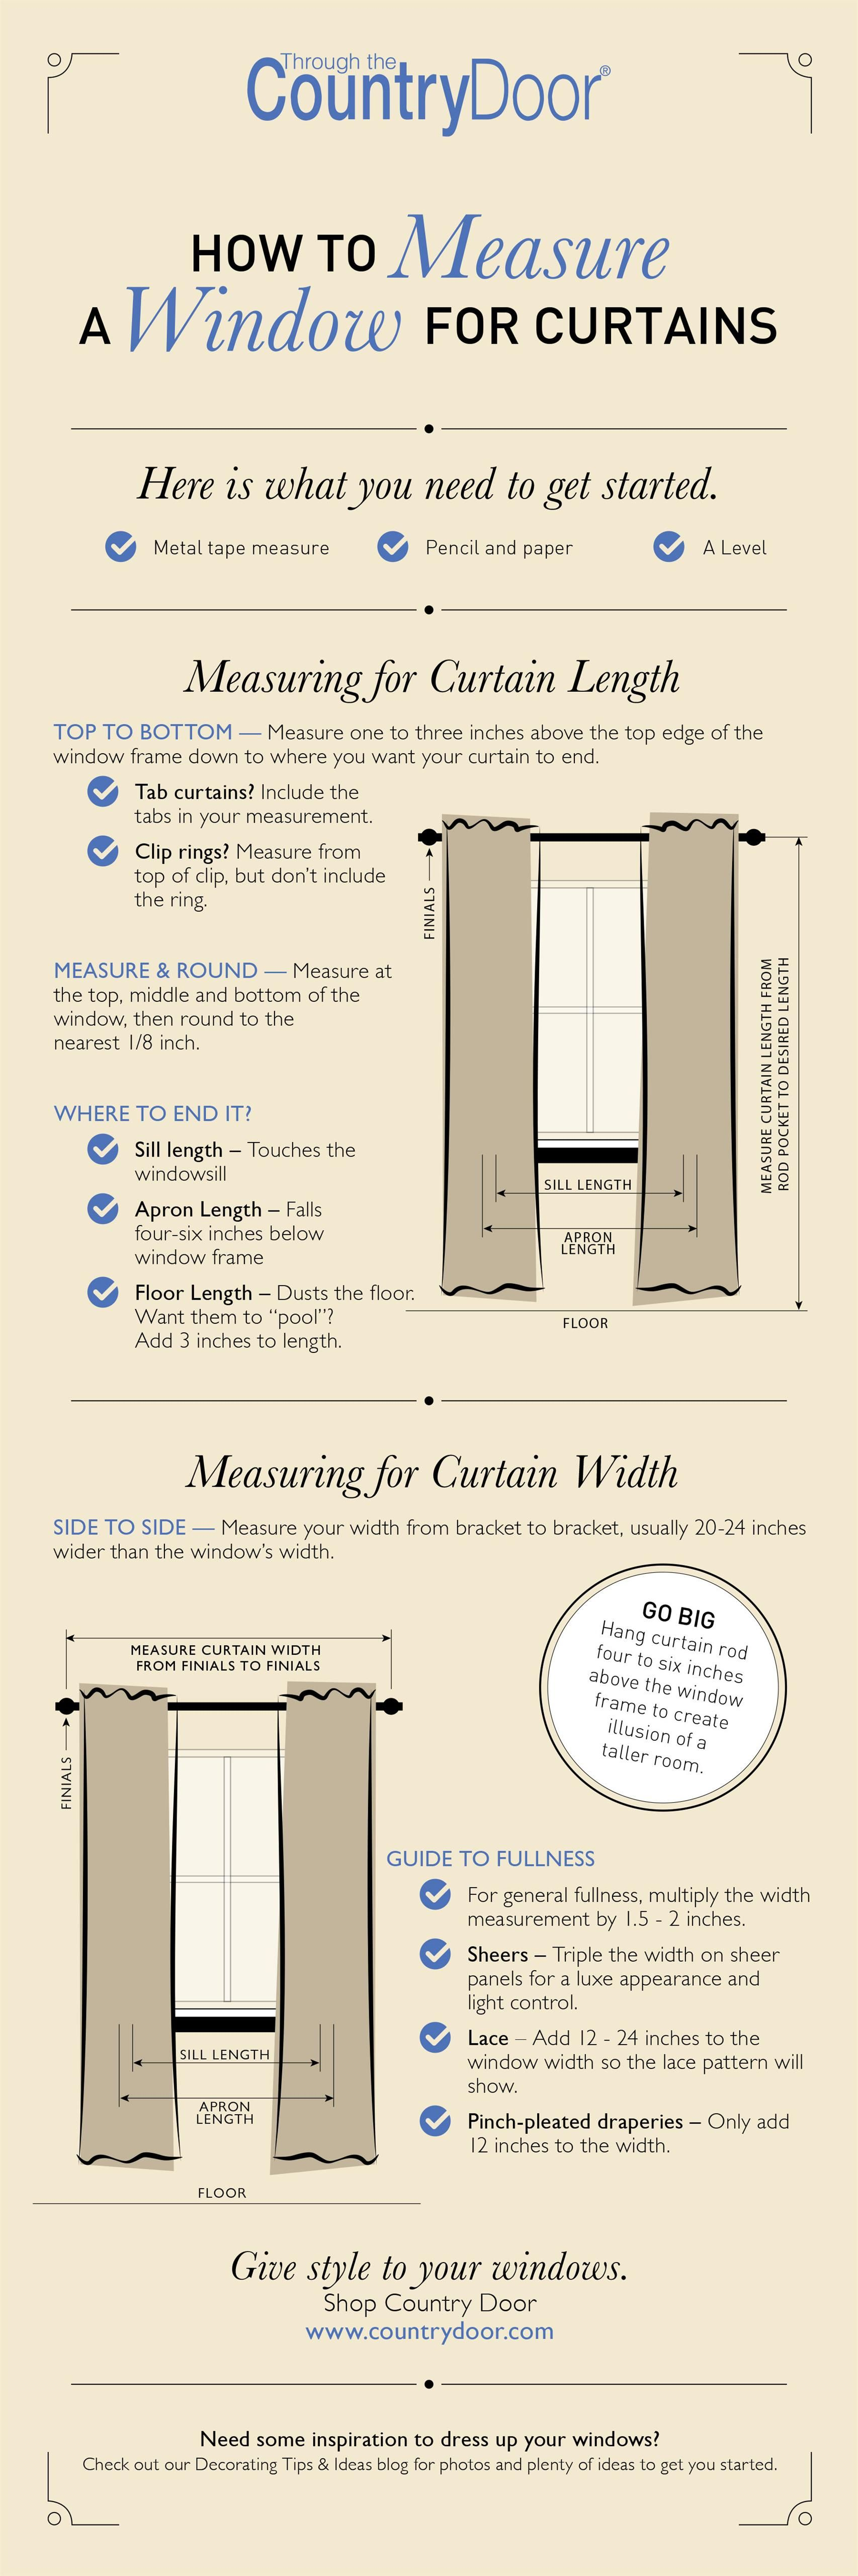 How To Measure A Window For Curtains Diy Curtains Curtains Window Treatments Curtains